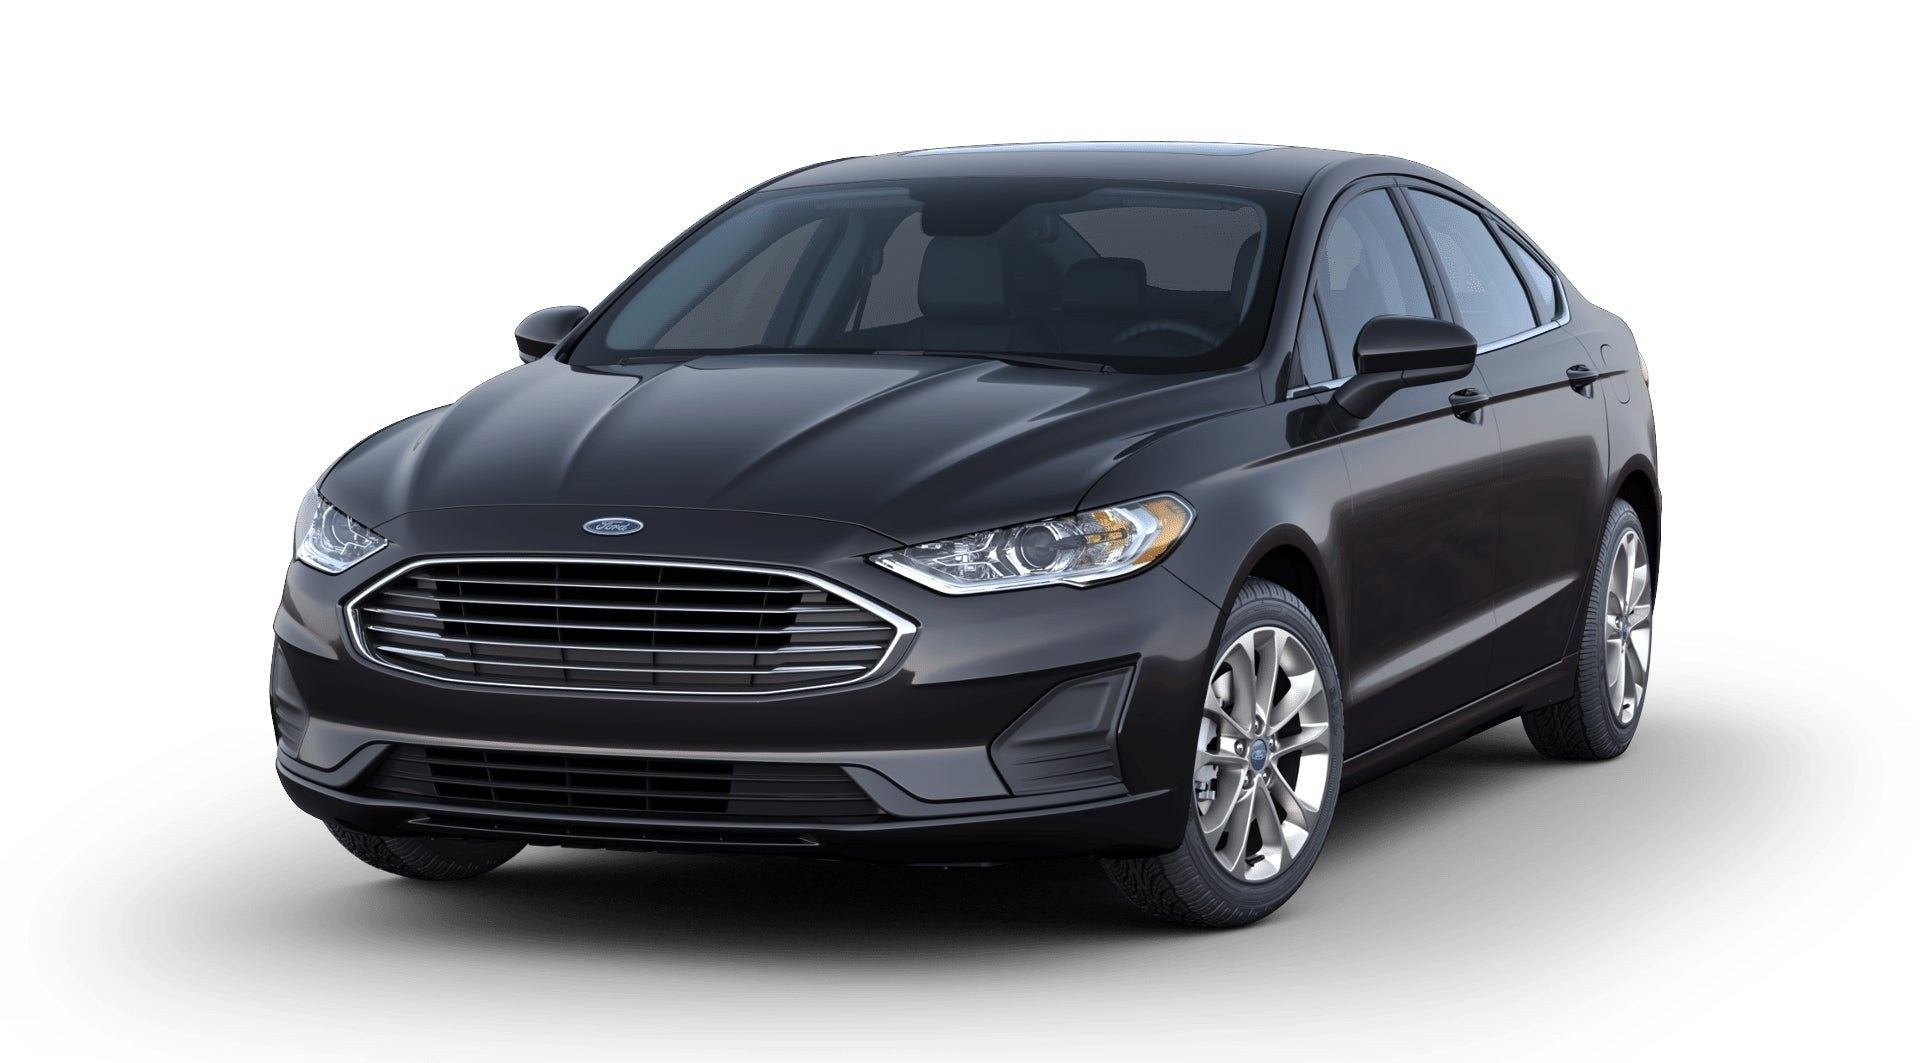 Price Of 2020 Ford Fusion Hybrid Ford Fusion Ford Car